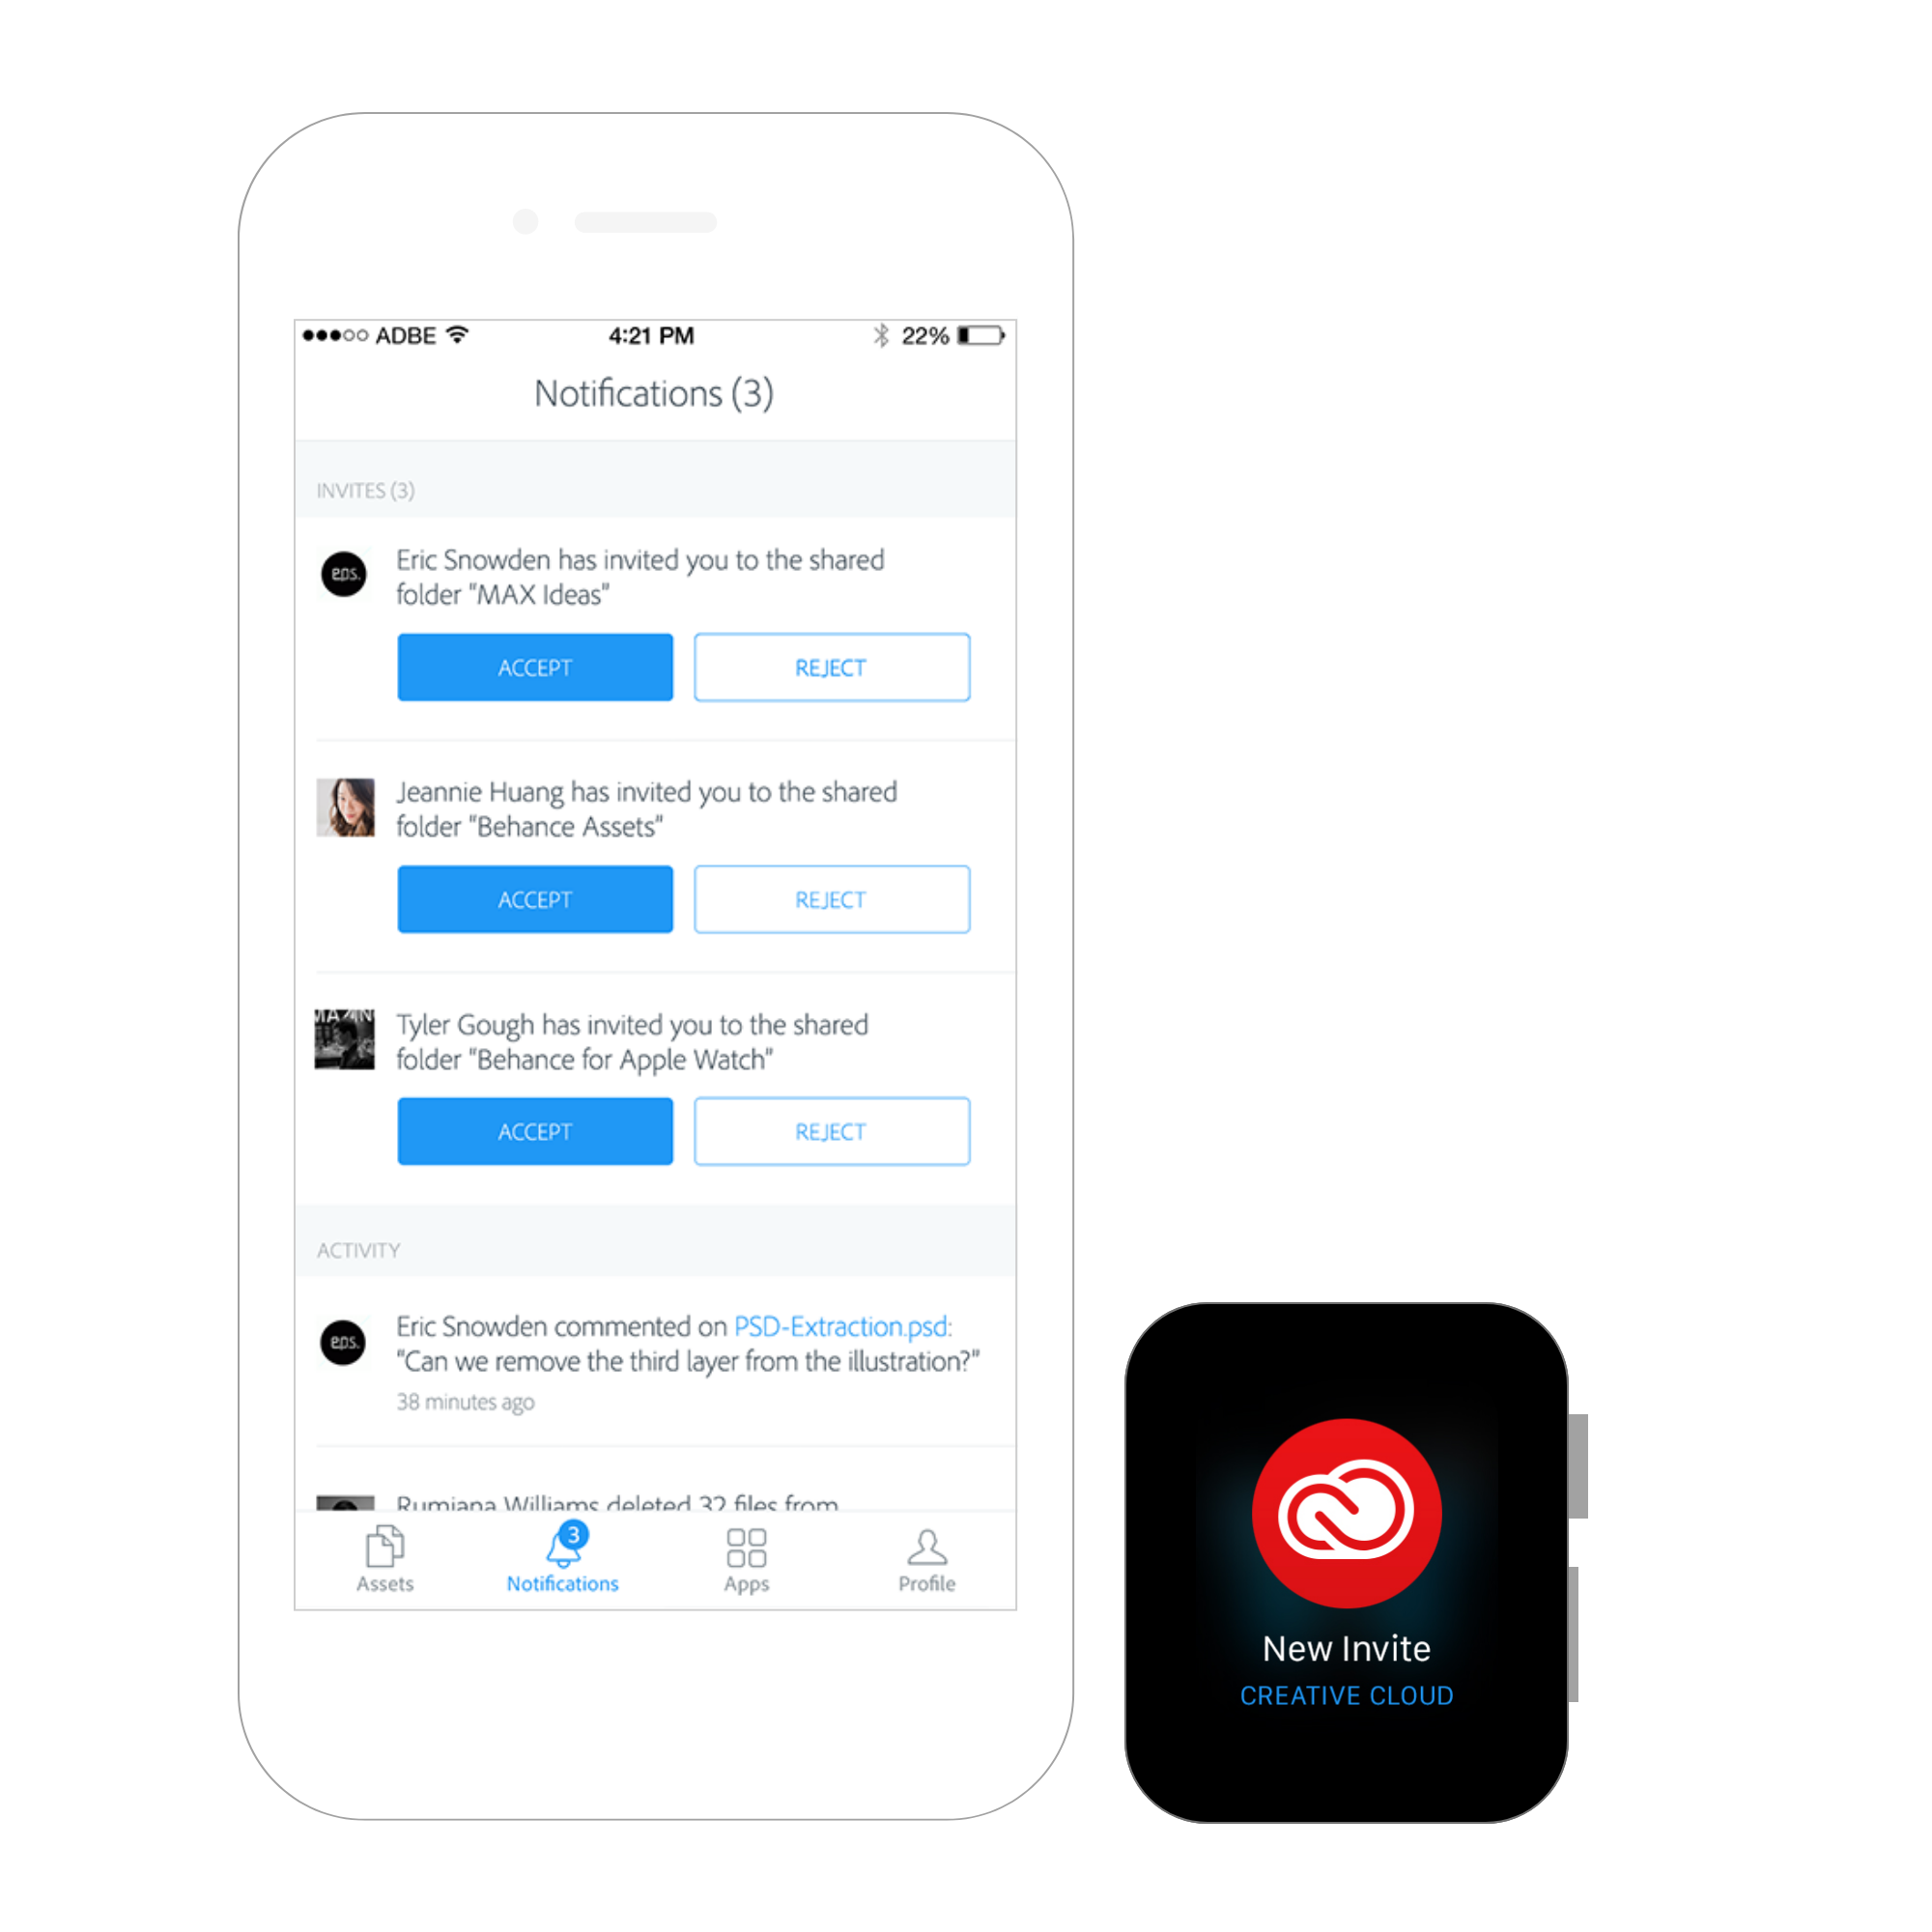 - The watch app is an extension of the CC iOS app which gives users access to their creative files, let's them give and receive comments, get invites to folders and also have access to account information.Prior to the Apple Watch launch the Creative Cloud team examined which features of the app are best suited for the Apple watch. Since major features are collaboration and notifications, we started developing the app based on the extensive documentation provided by Apple.After the launch of the watch and while spending more time with it, we realized that some of the features that we had developed are probably not as useful as we initially thought. In the next iteration of the Watch app we removed anything that was not timely.